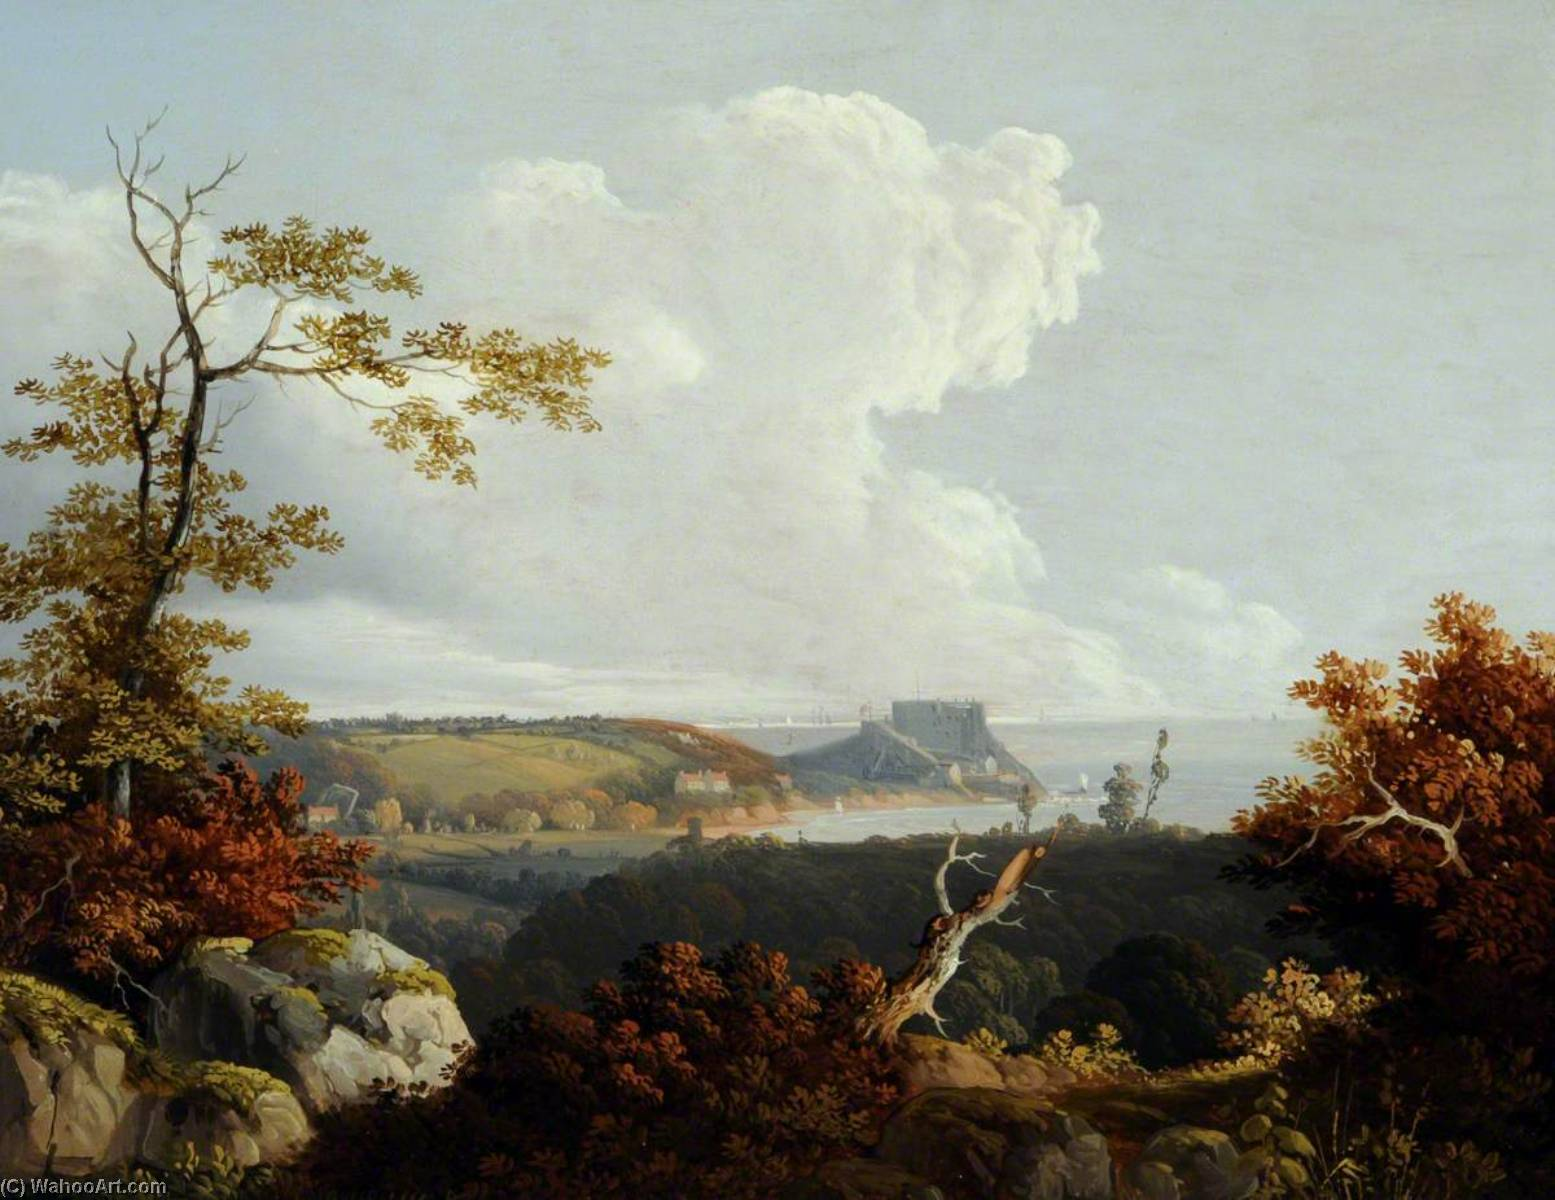 Order Painting Copy : View of Mont Orgueil, 1814 by John Tobias Young | WahooArt.com